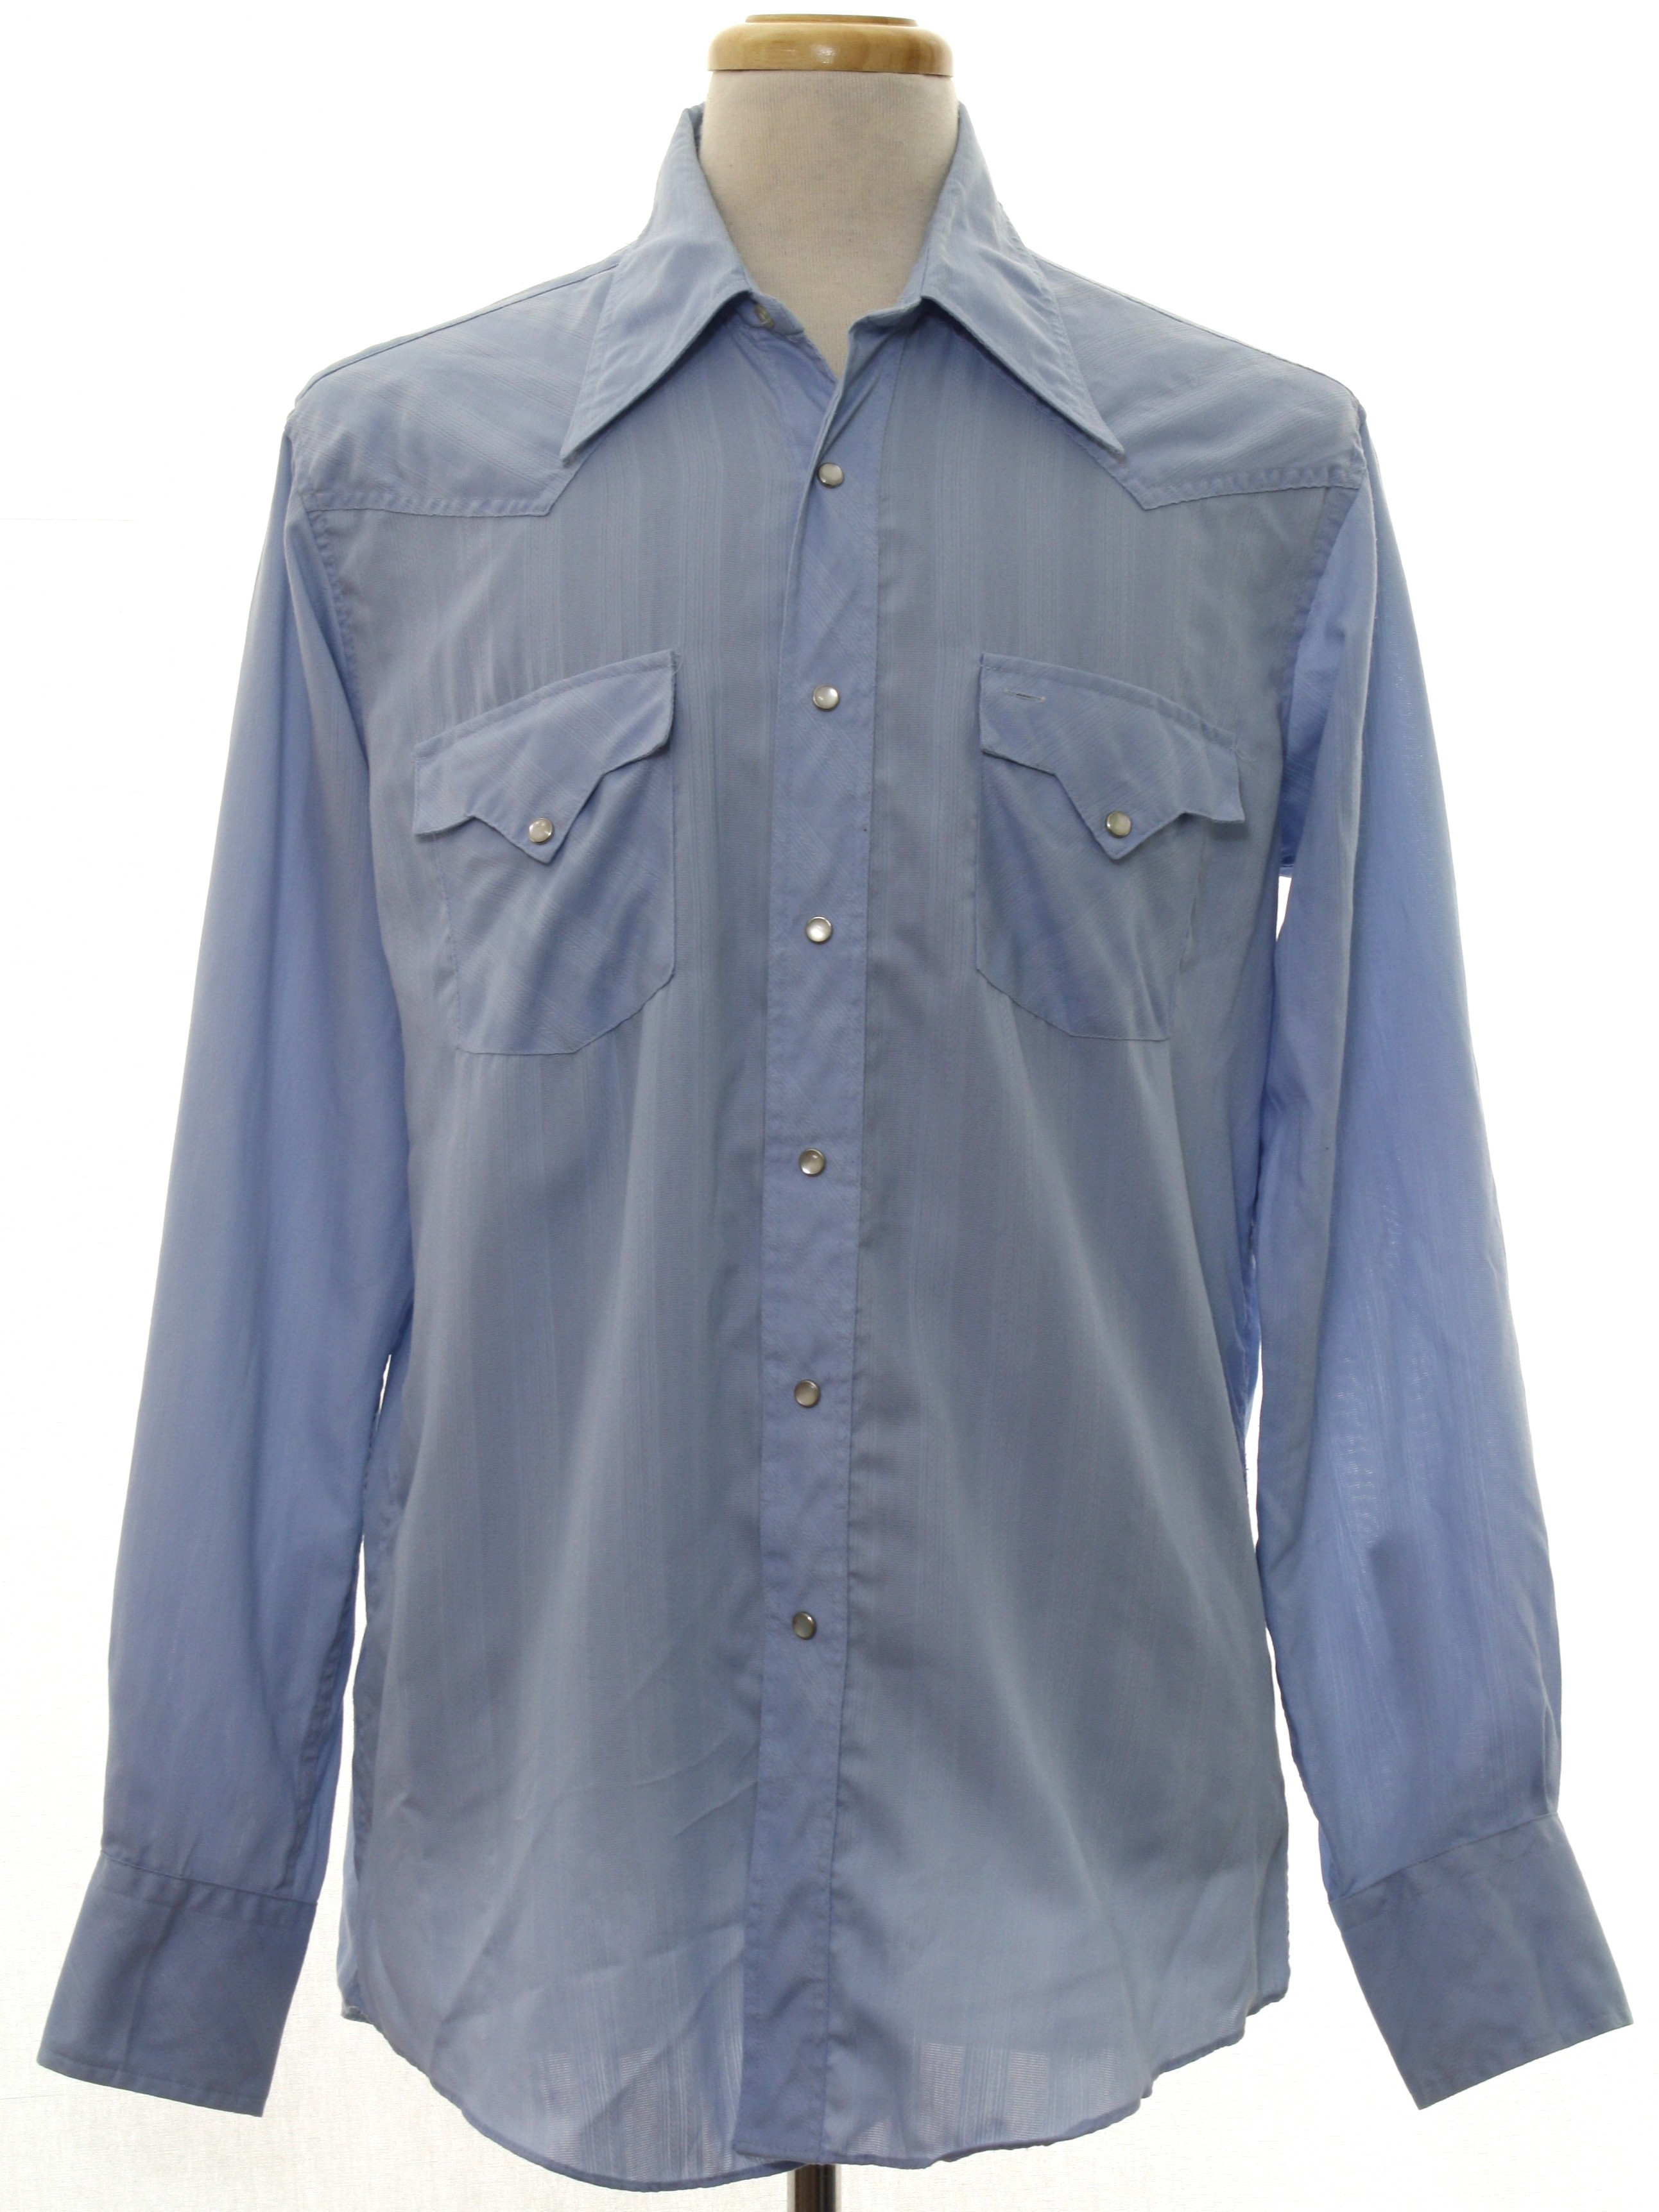 70s Vintage Western Shirt Late 70s Or Early 80s Fenton Mens Sky